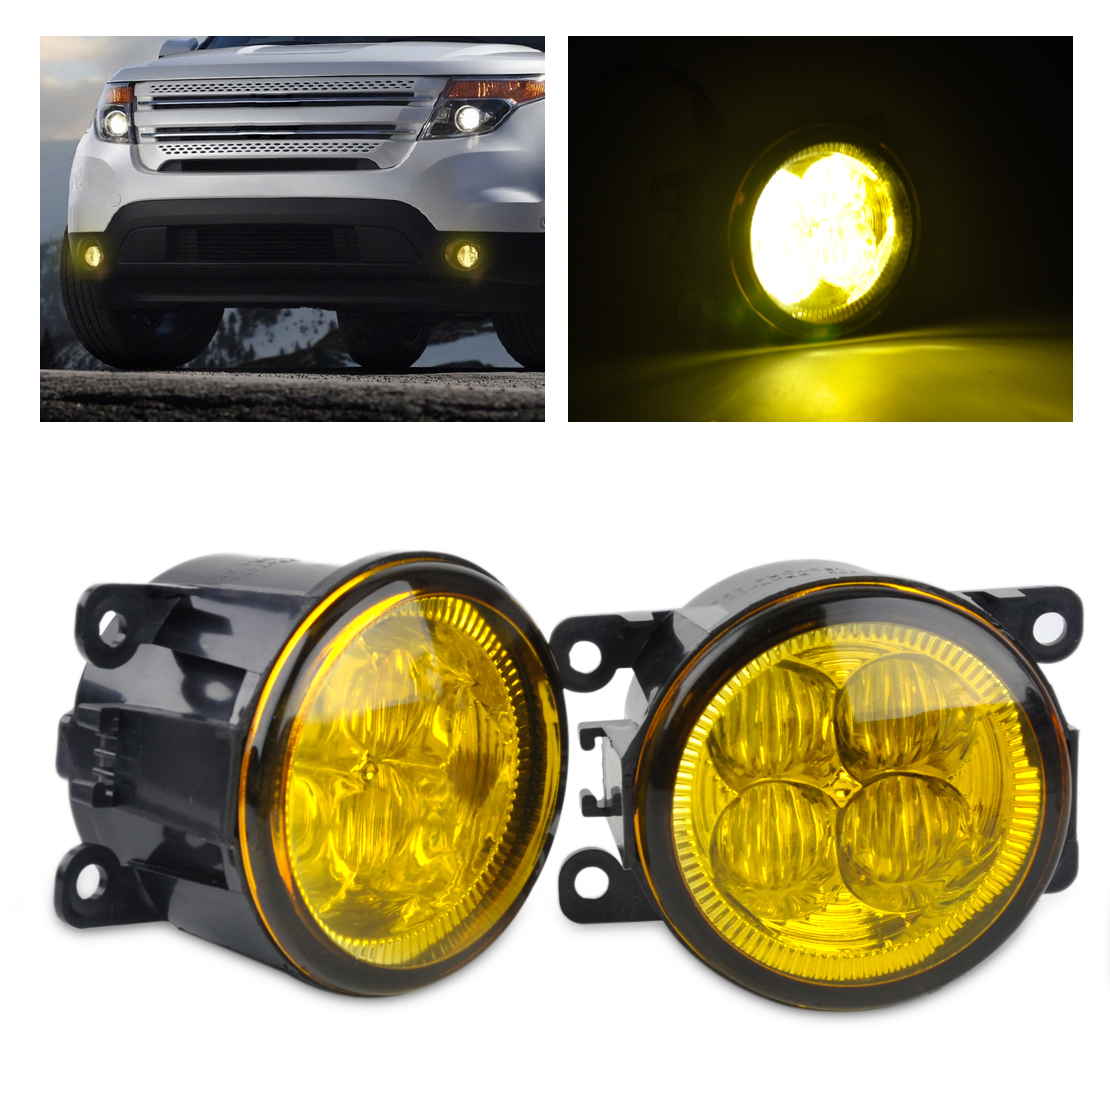 beler 2pcs Highlighted LED Fog Light Lamp with Yellow Lens AC2592111 3225-2050B for Ford Focus Acura Honda Subaru Nissan Suzuki beler fog light lamp h11 female adapter wiring harness sockets wire connector for ford focus fiesta acura nissan honda subaru